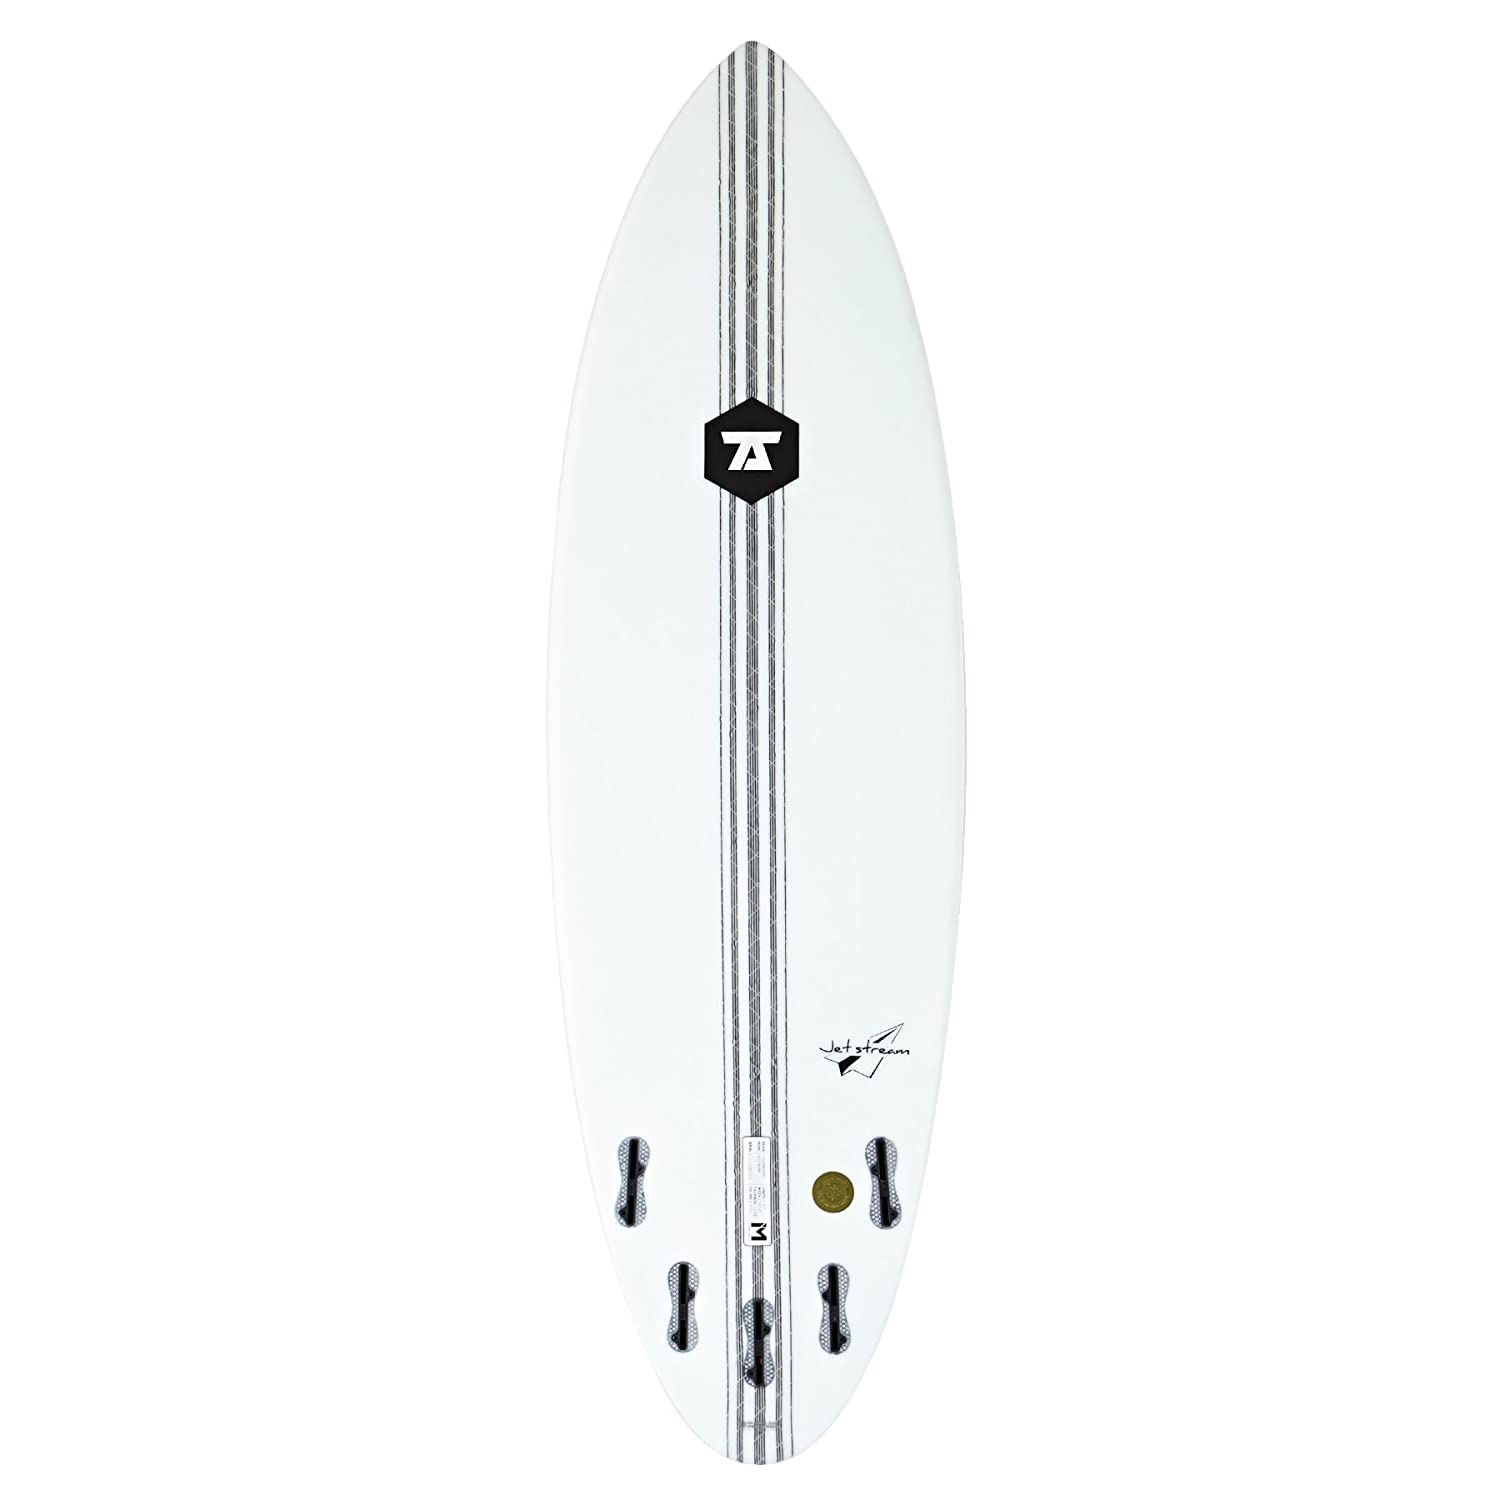 7S Jetstream Innegra Matrix FCS II - Tabla de surf (152 cm), transparente: Amazon.es: Deportes y aire libre